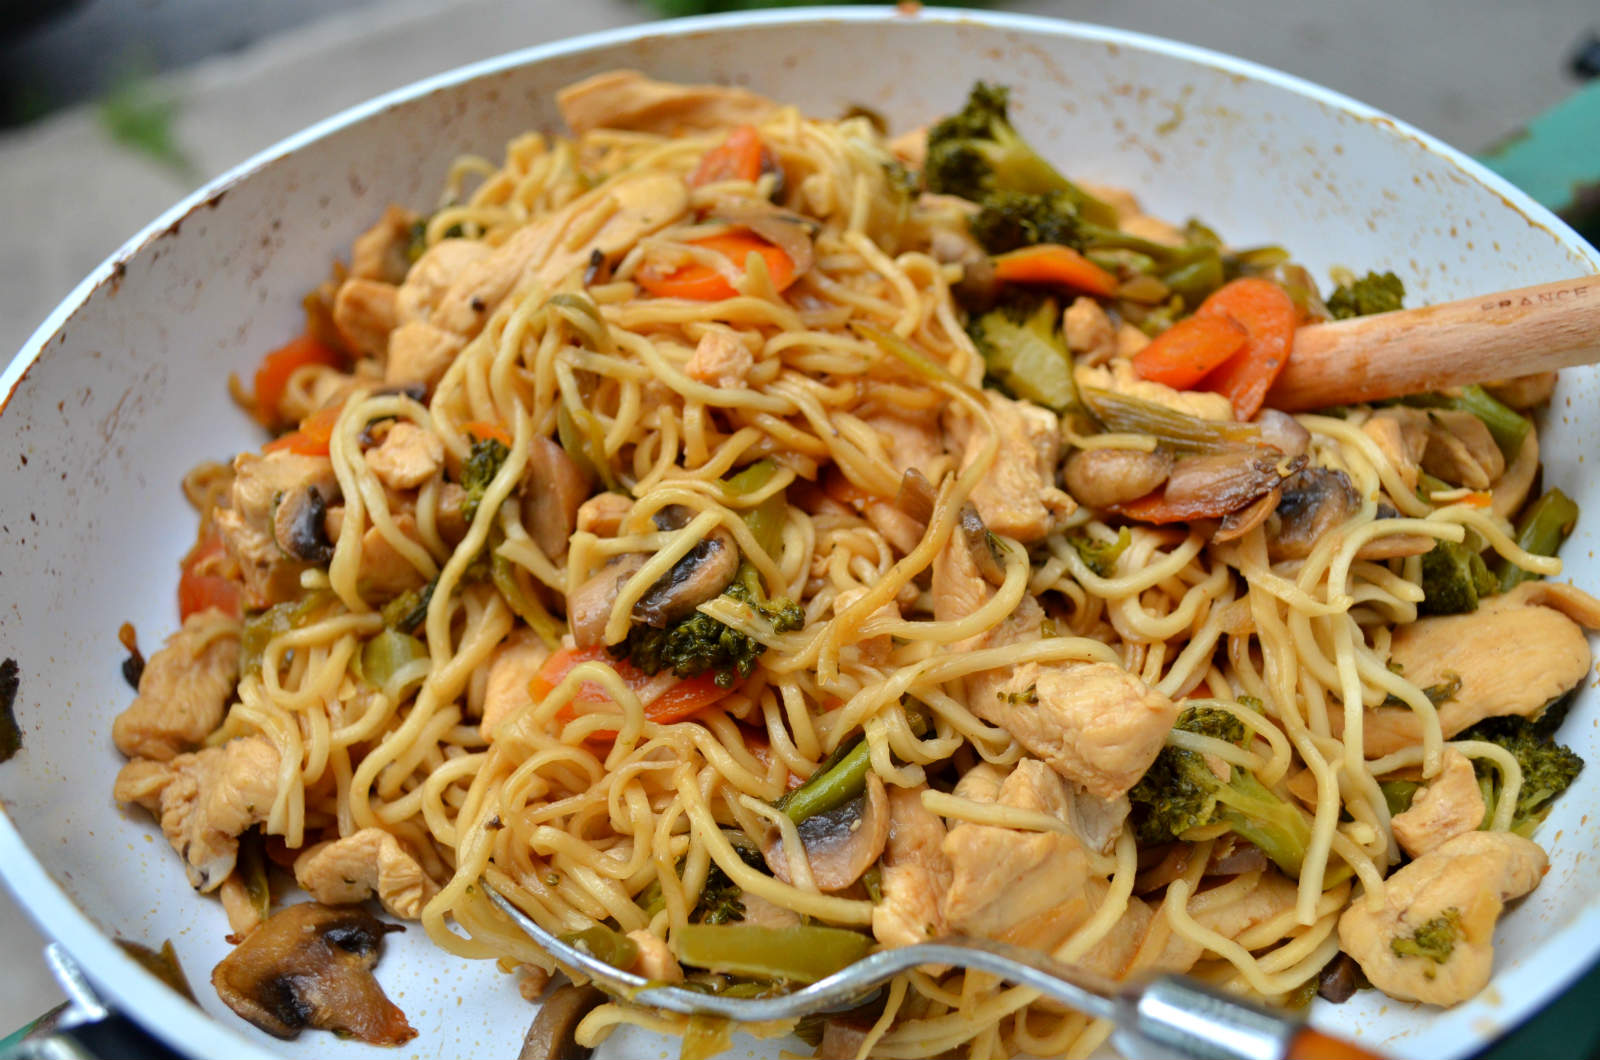 Agree, this Asian chicken and noodles you